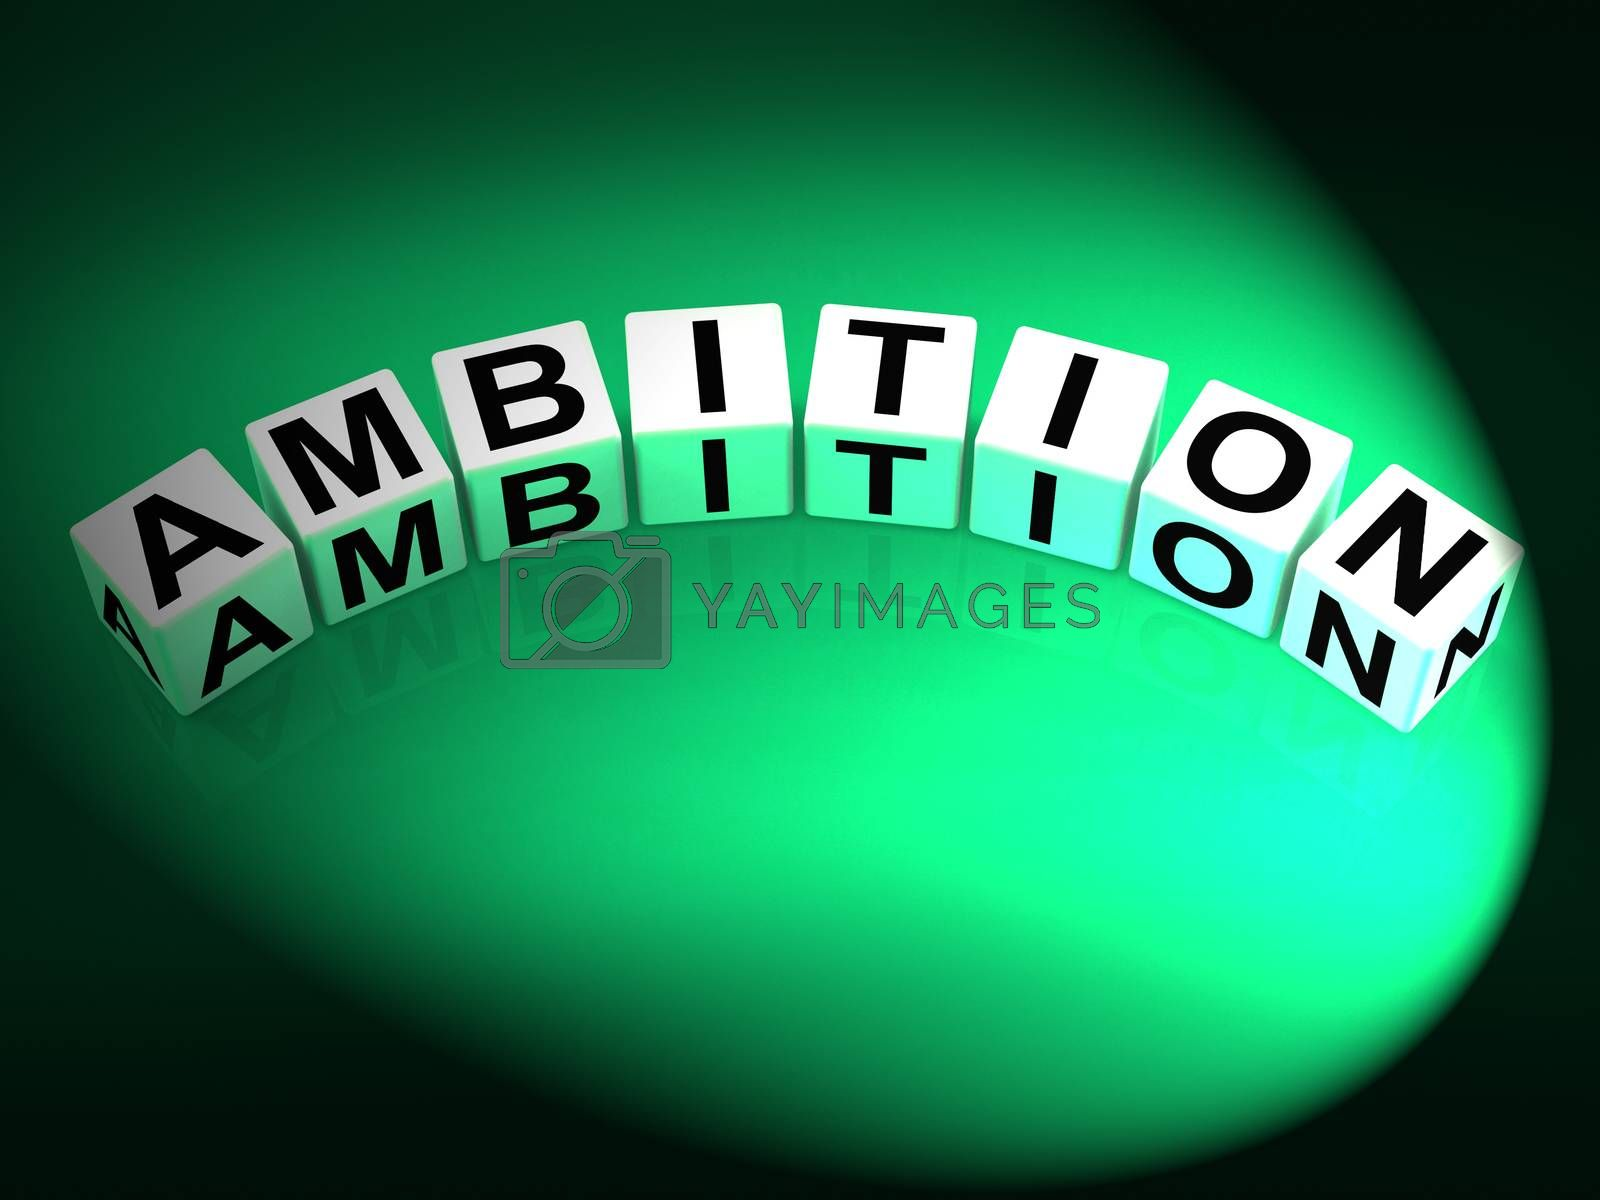 Ambition Dice Show Targets Ambitions and Aspiration by stuartmiles